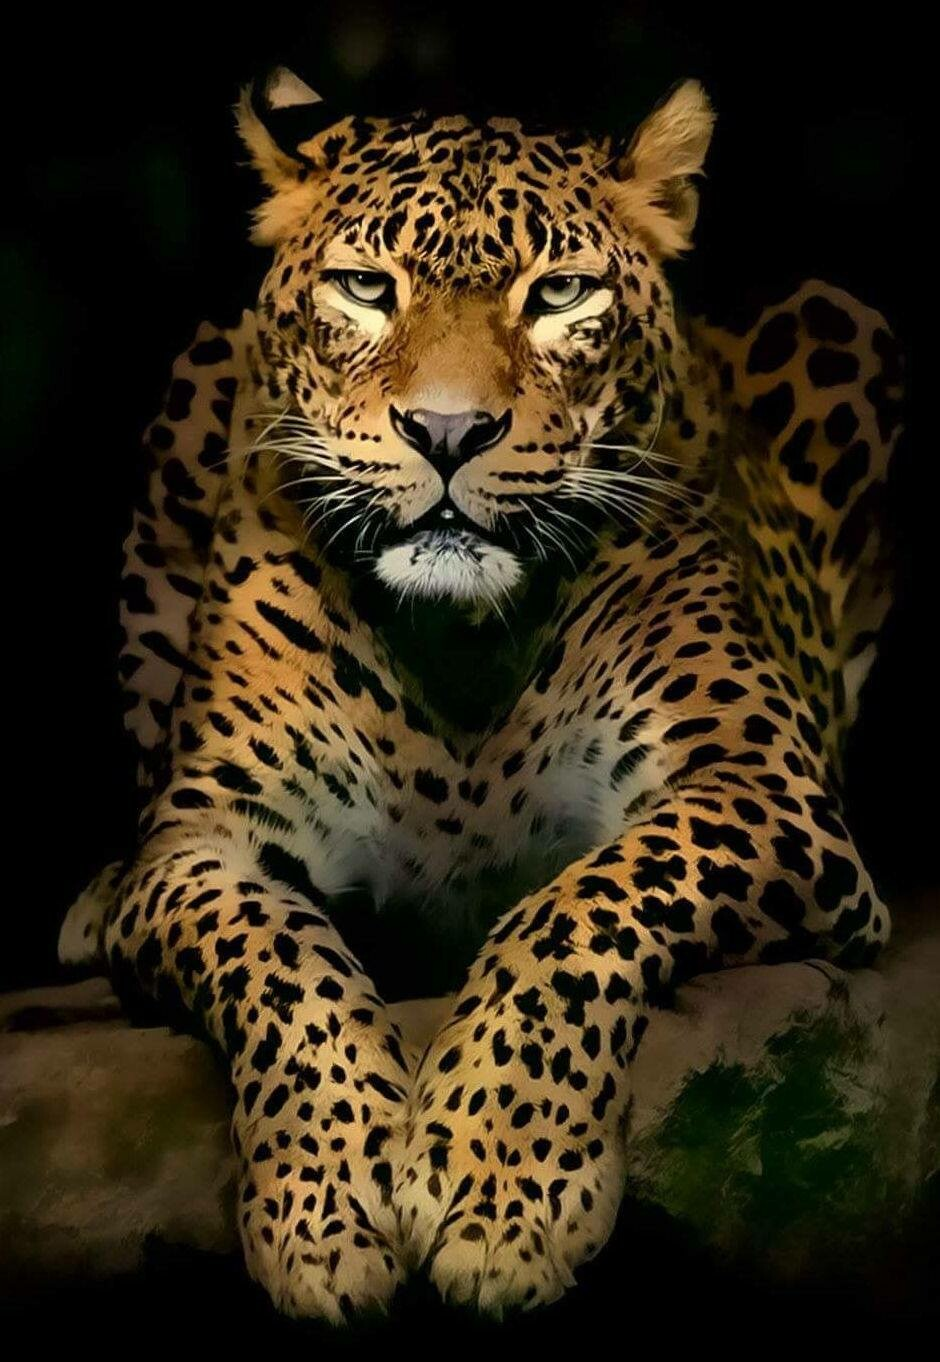 Leopard on Black - 50 x 70cm - Full Drill (Square), Diamond Painting Kit - Currently in stock